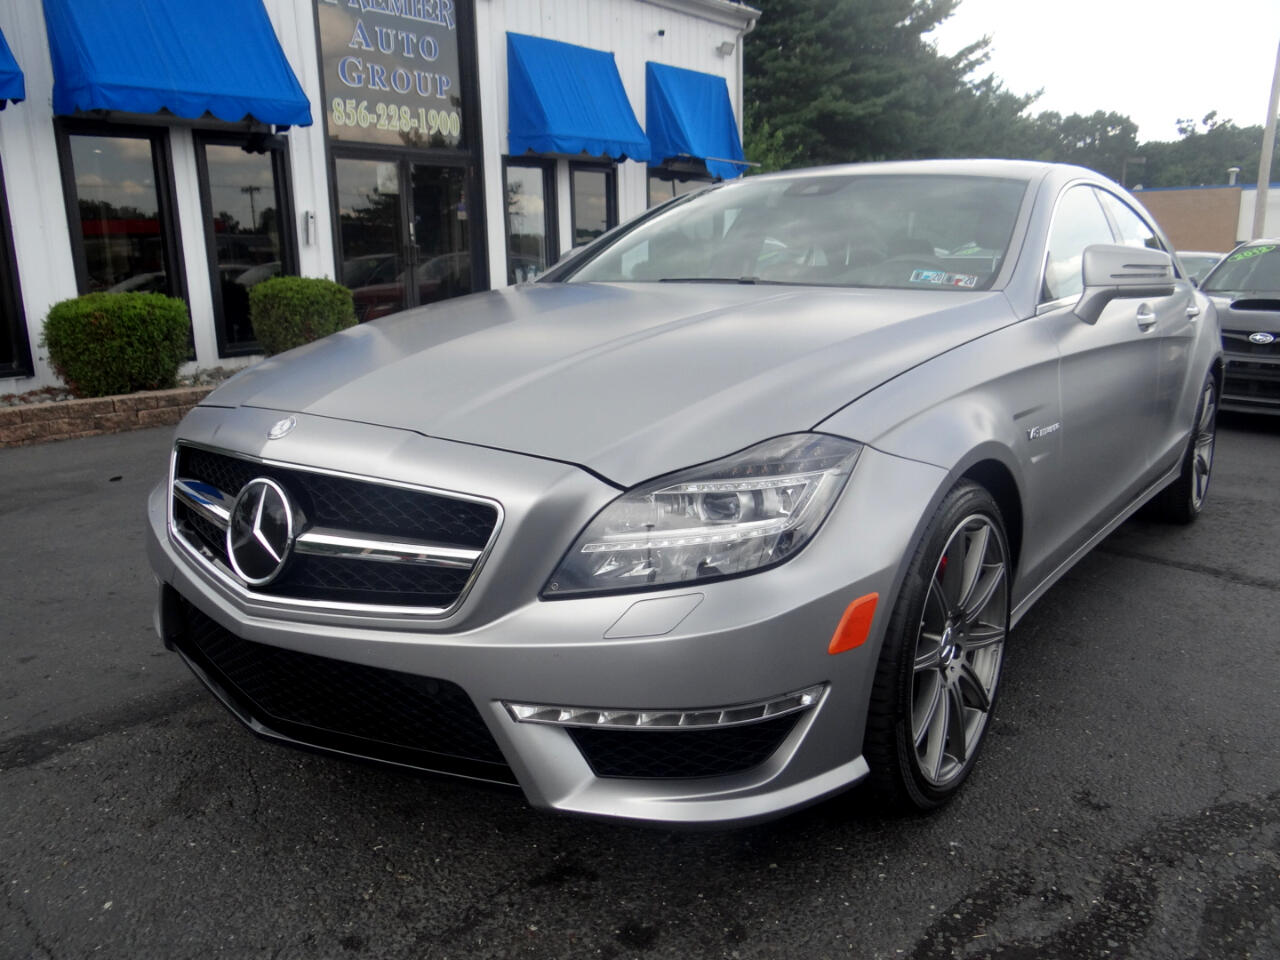 2014 Mercedes-Benz CLS-Class 4dr Sdn CLS 63 AMG S-Model 4MATIC